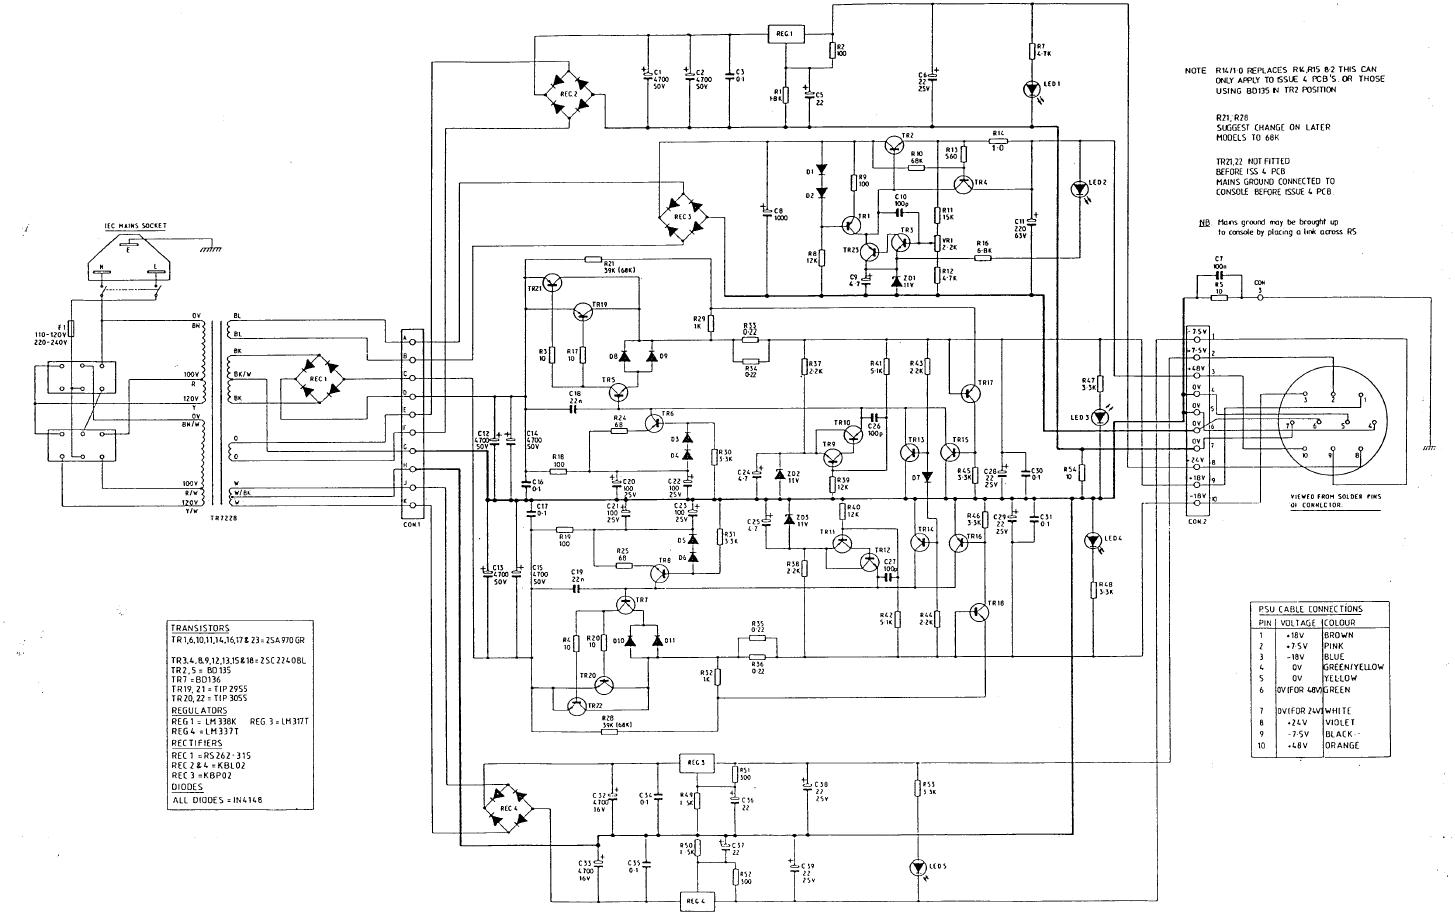 Sound Mixer Wiring Diagram, Sound, Get Free Image About